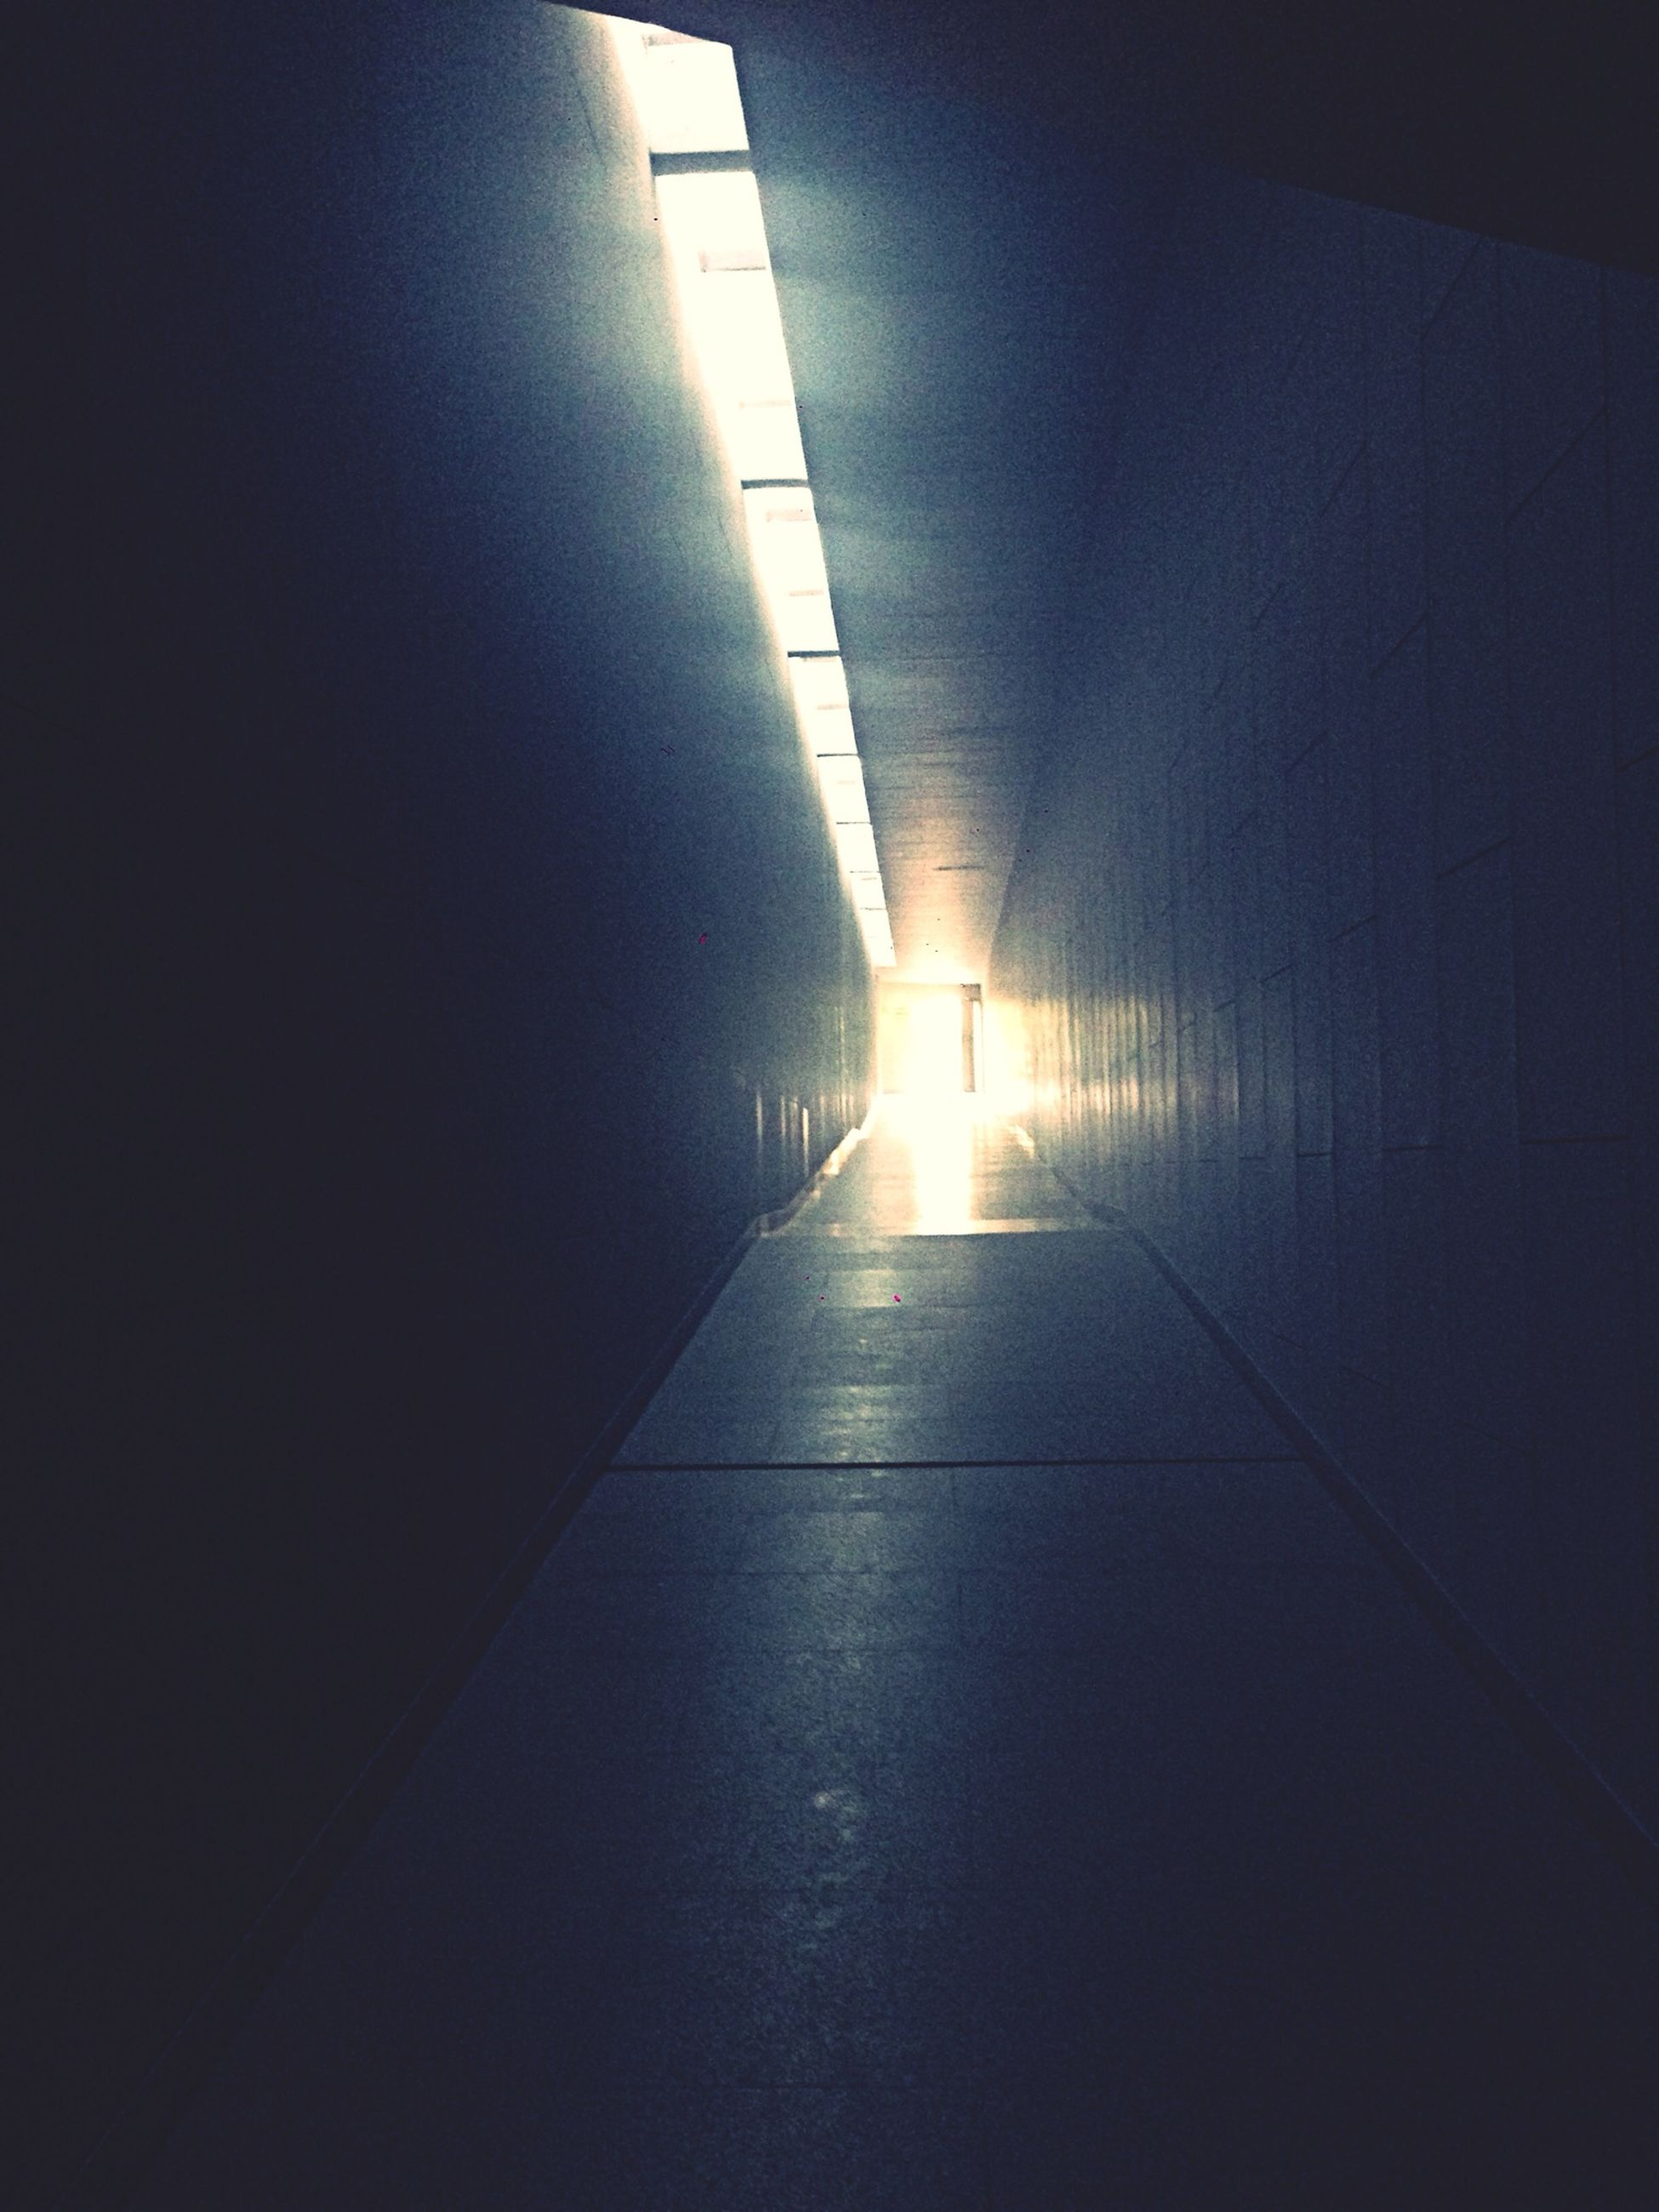 indoors, the way forward, architecture, built structure, empty, wall - building feature, illuminated, sunlight, lighting equipment, corridor, diminishing perspective, ceiling, no people, flooring, absence, tiled floor, shadow, light - natural phenomenon, vanishing point, building